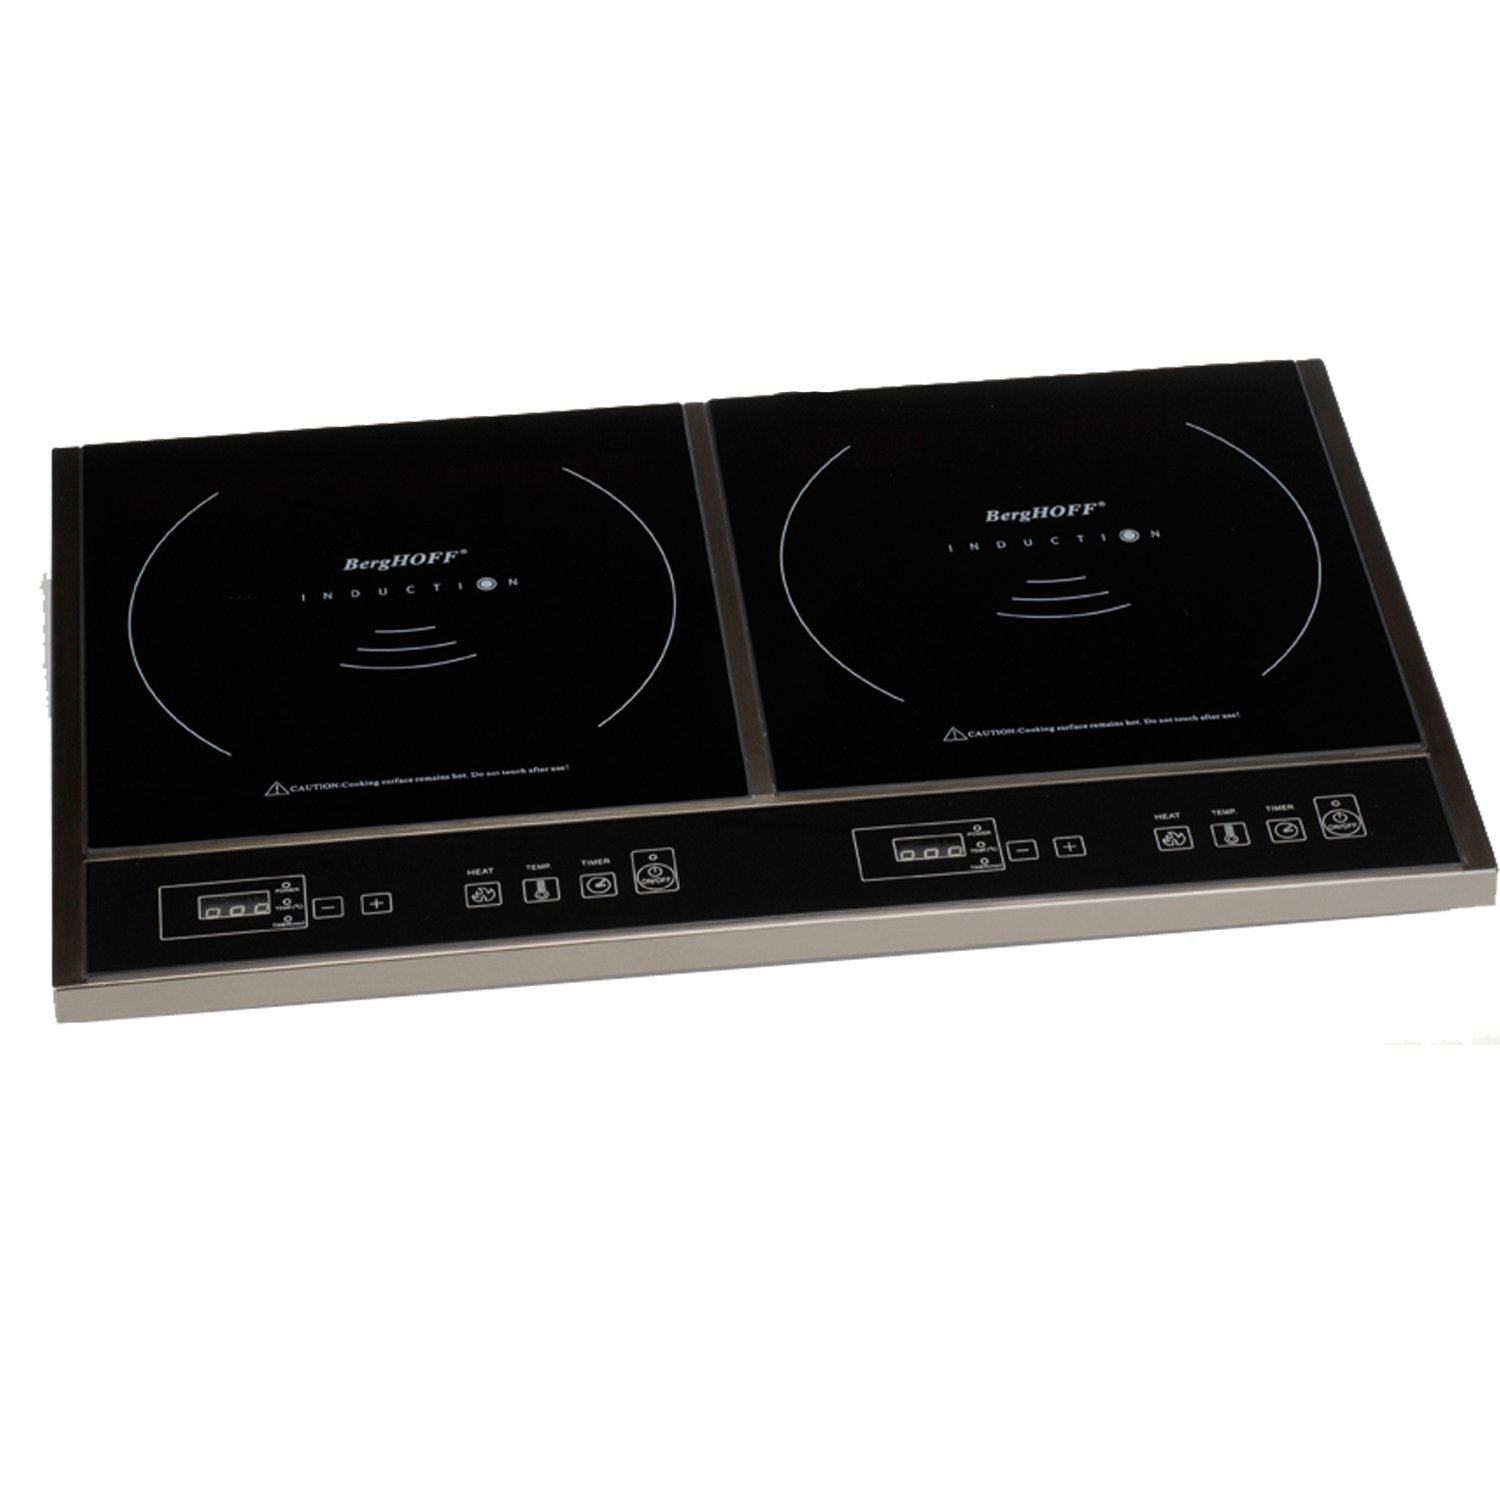 Induction Cooktops Reviews Best 2 Burner Induction Cooktop Electric Reviews